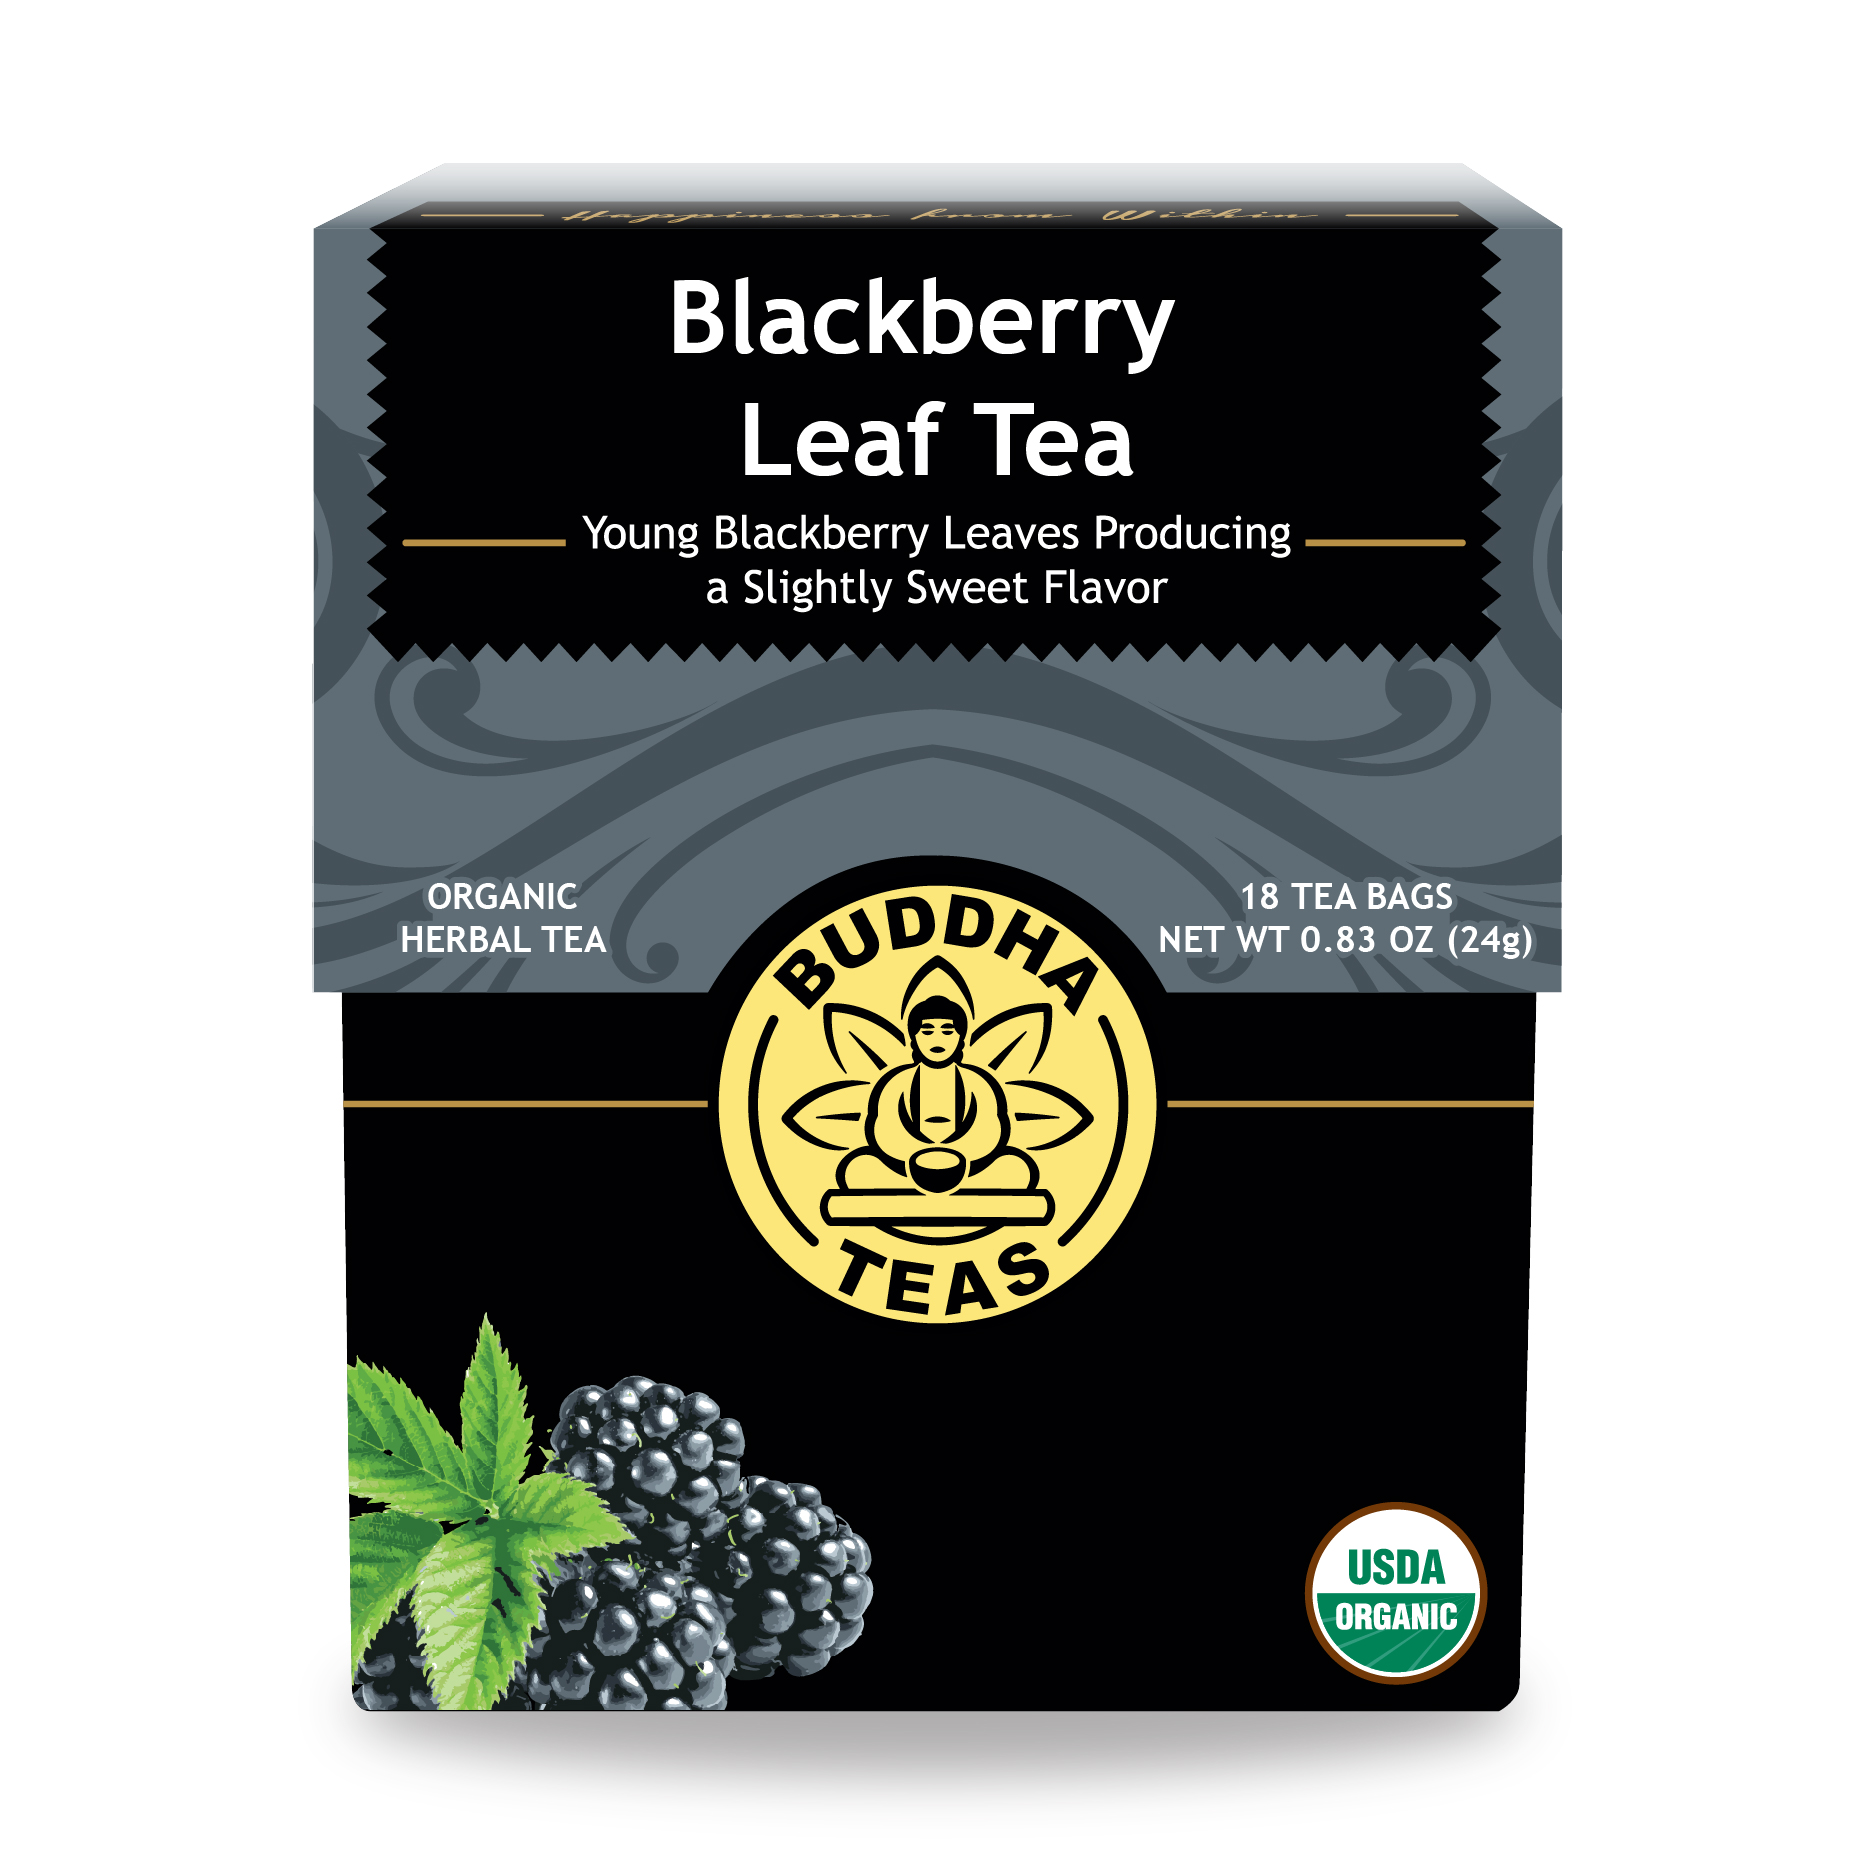 Buy Blackberry Leaf Tea Bags - Enjoy Health Benefits of Organic Teas ...